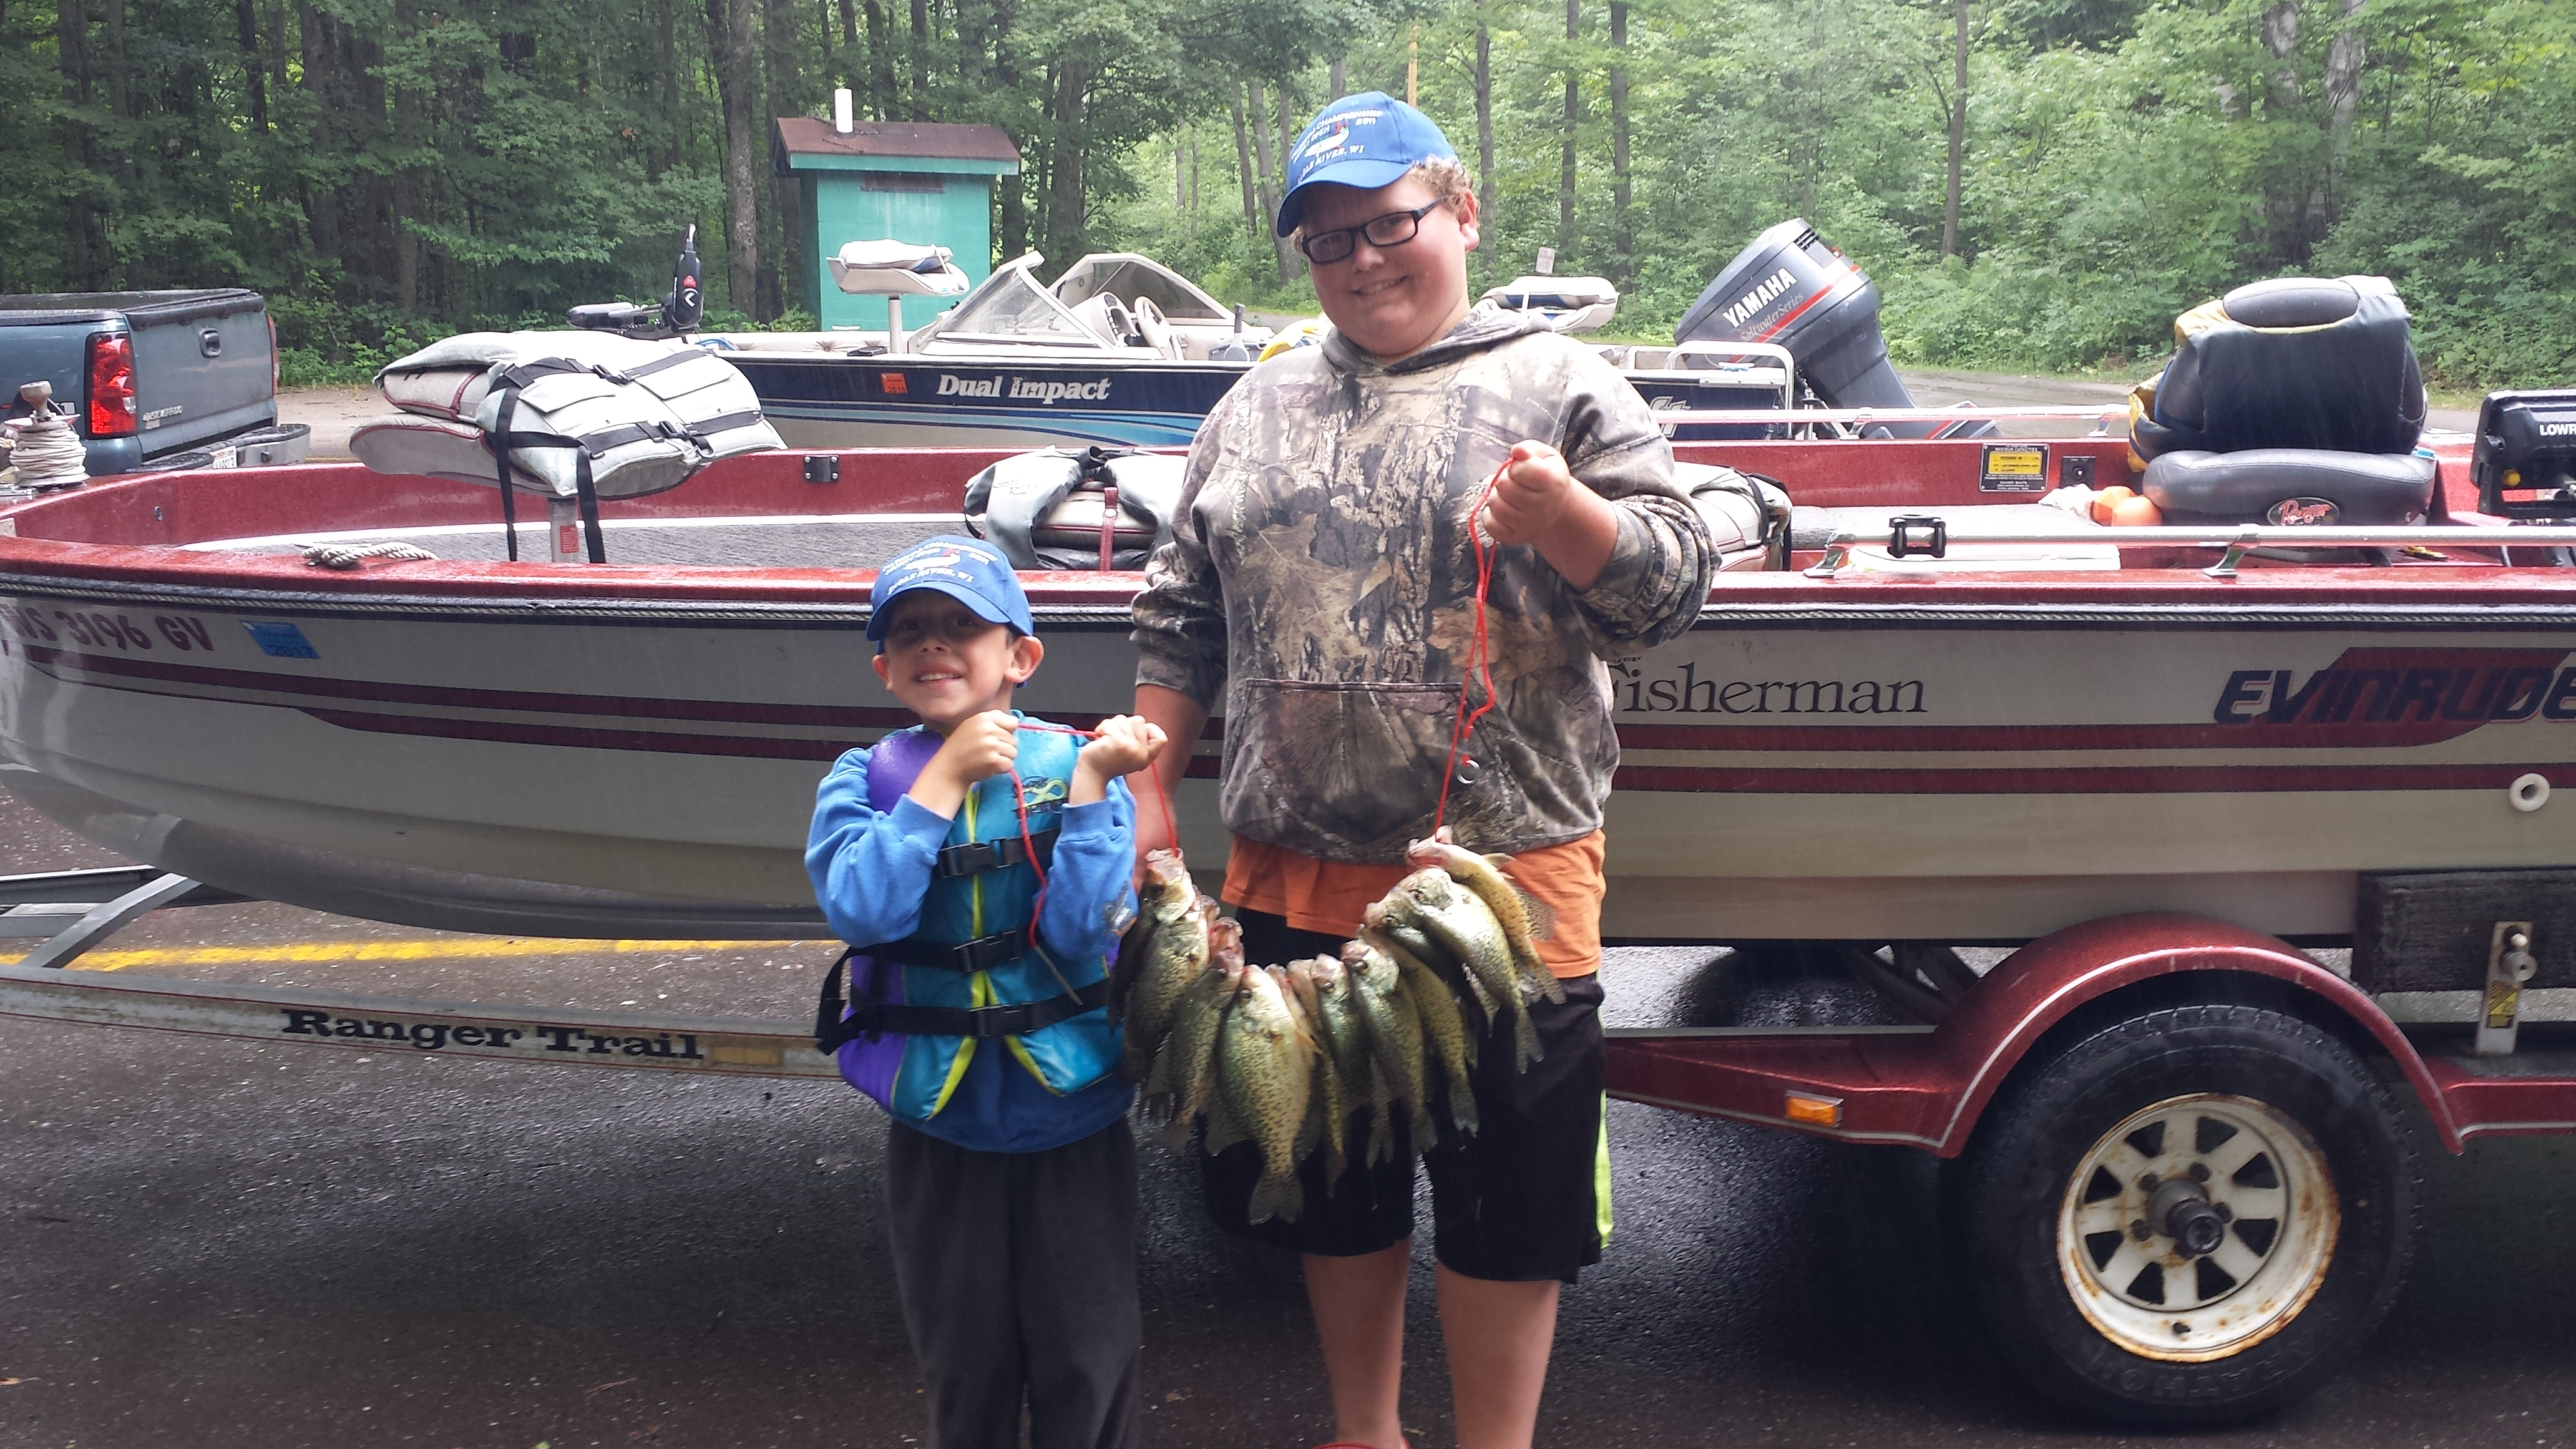 Fishing basics vilas county wi fishing report for Vilas county fishing report